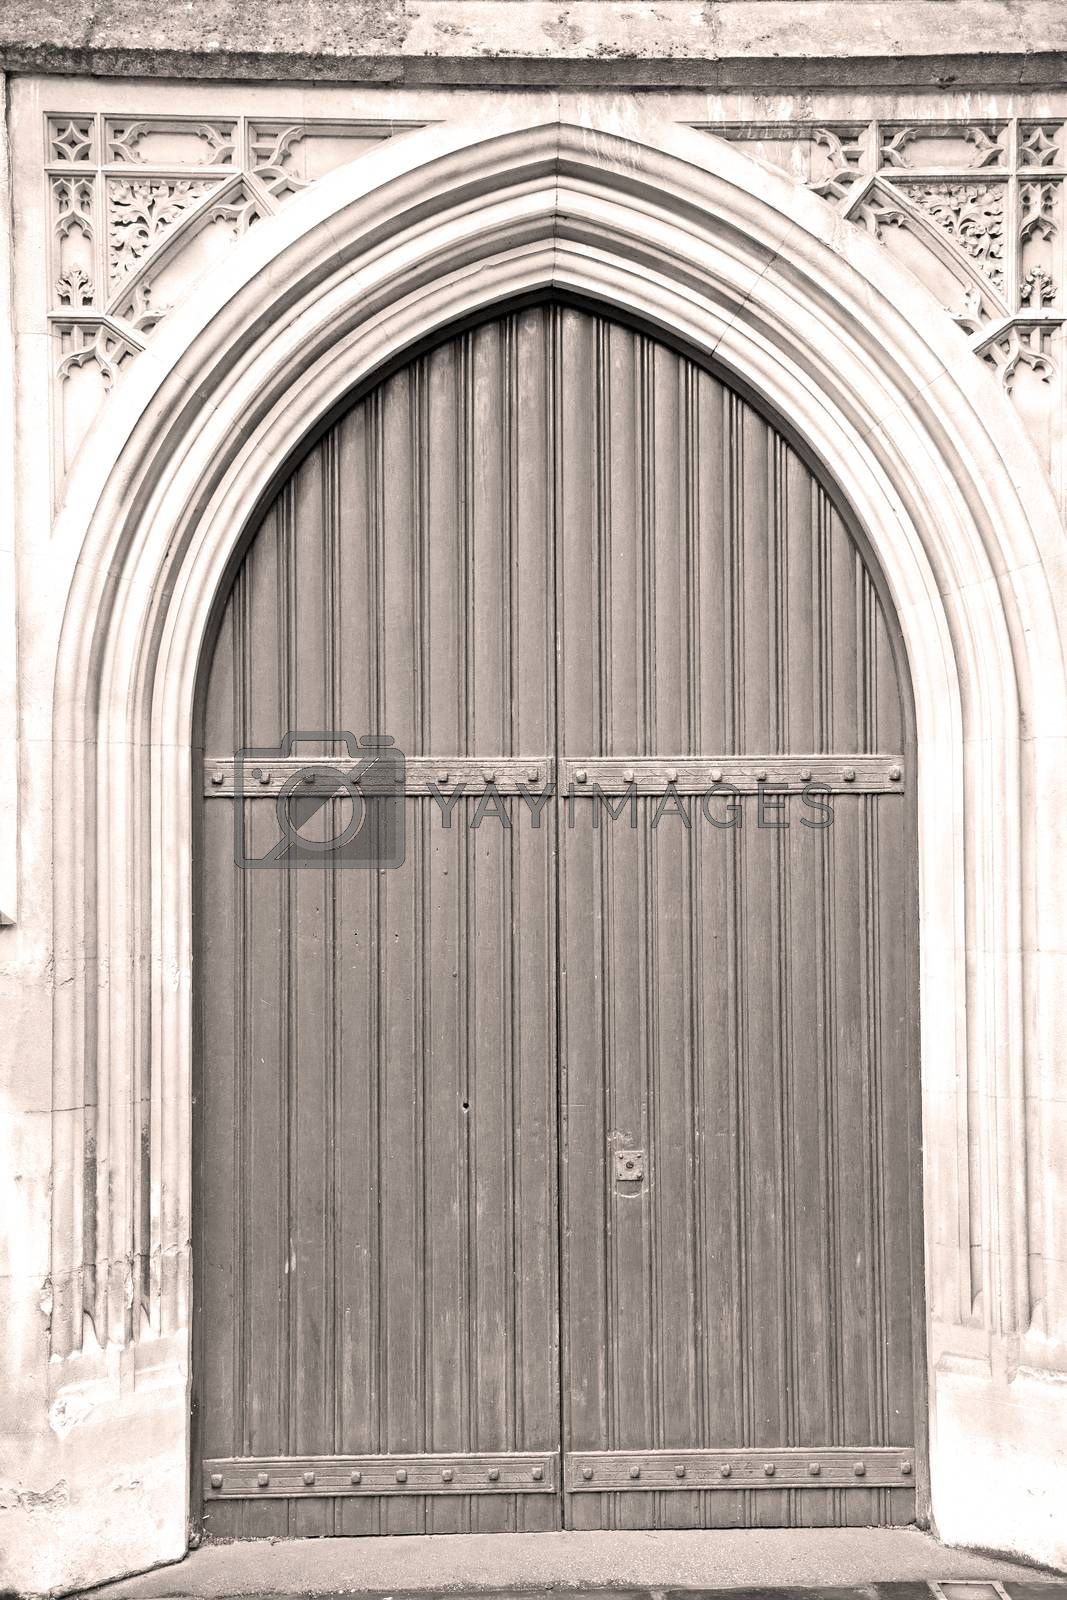 door southwark  cathedral in london england old  construction an by lkpro